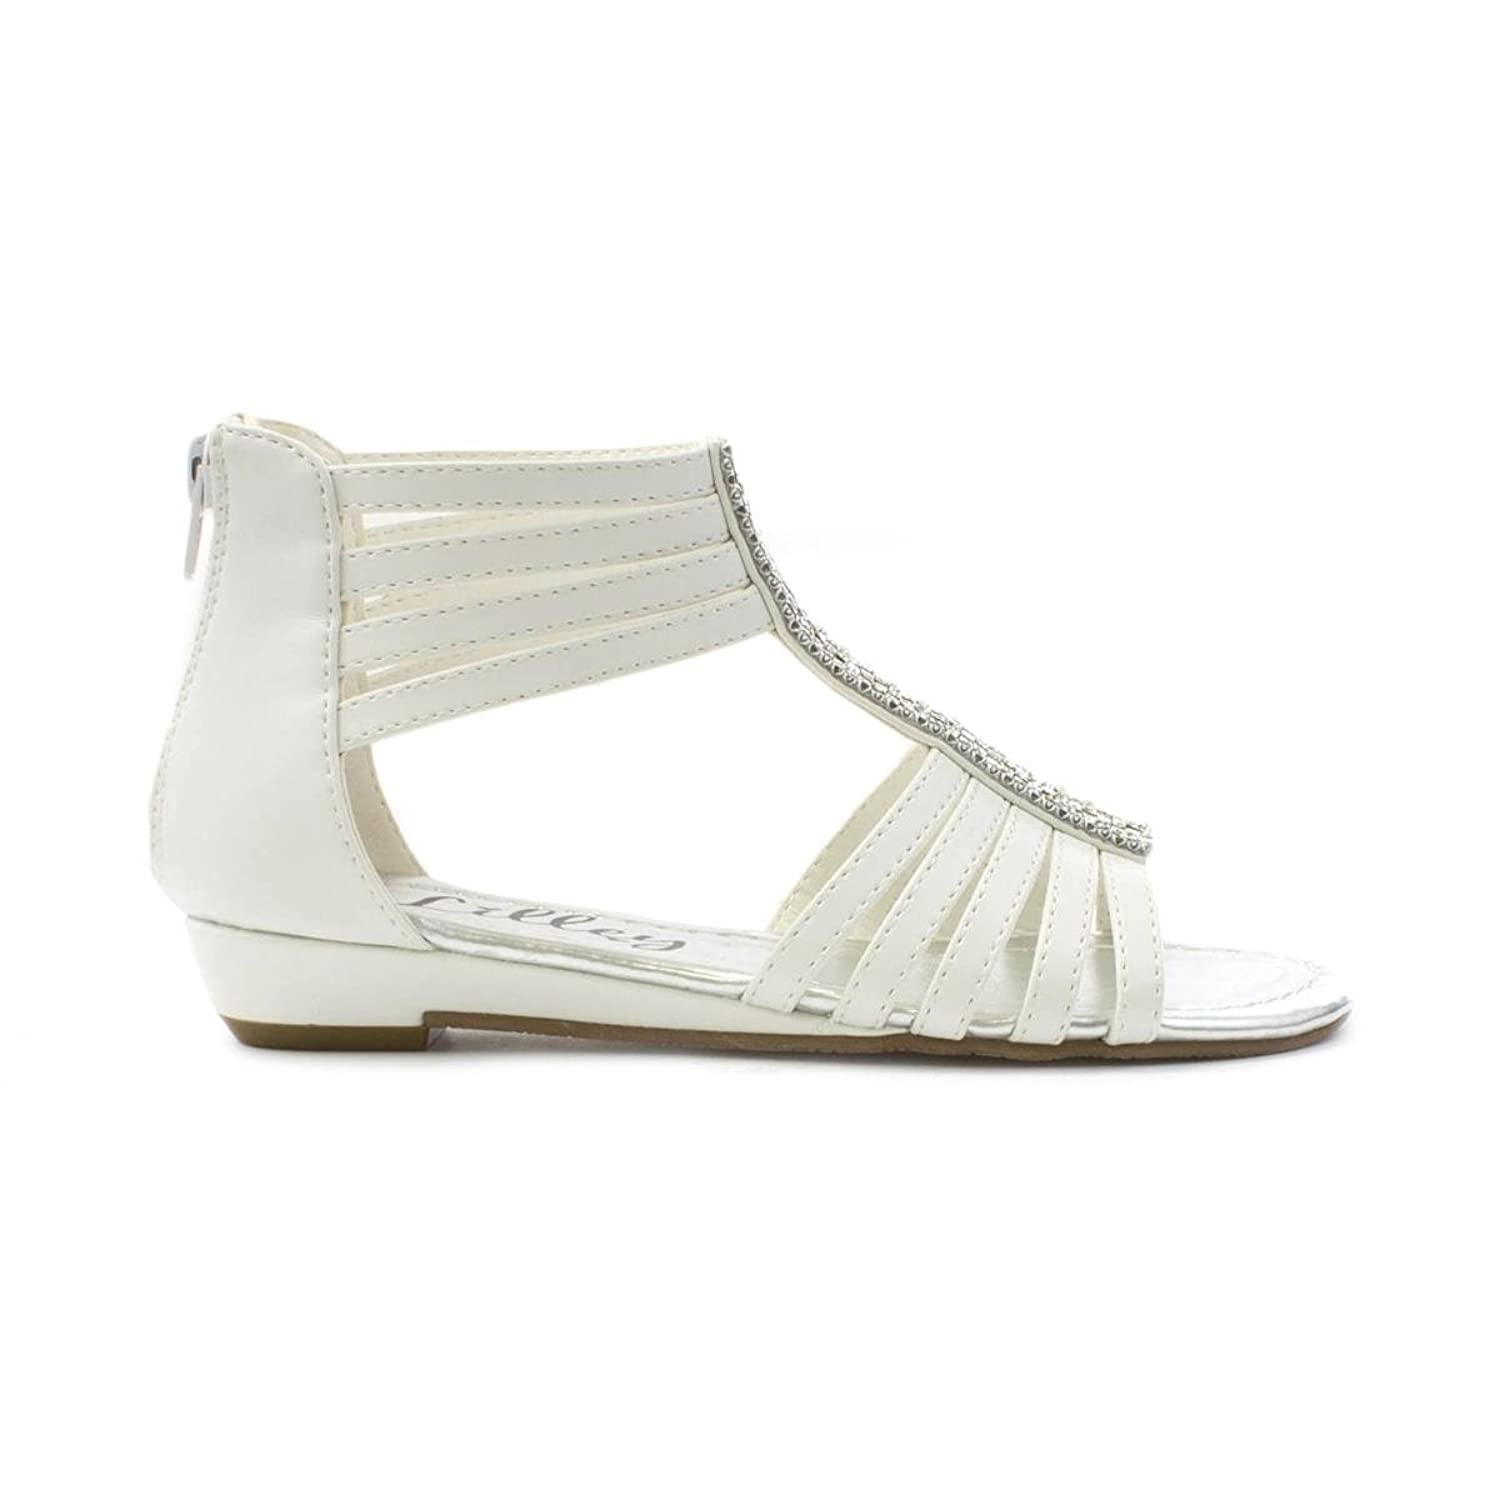 Lilley Girls Diamante Gladiator Sandal in White: Amazon.co.uk: Shoes & Bags